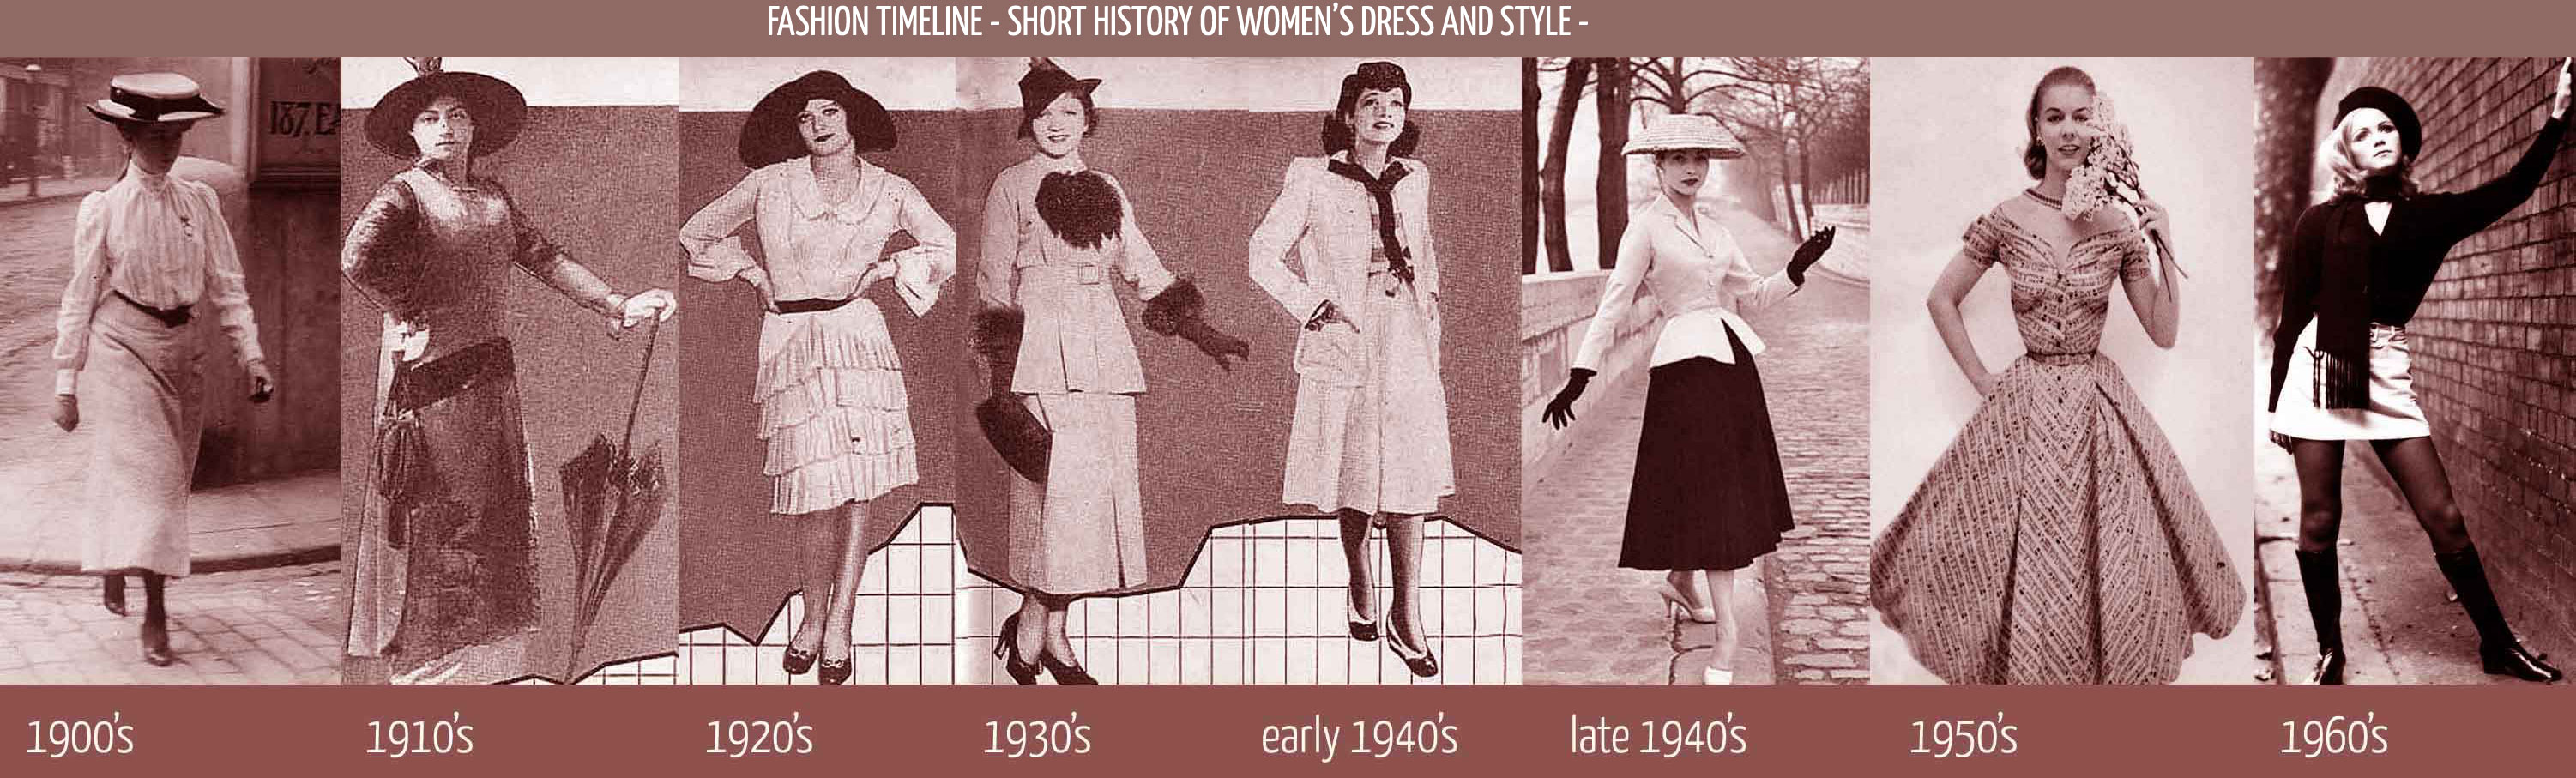 History of Womens fashion -1900 to 1969 | Glamourdaze